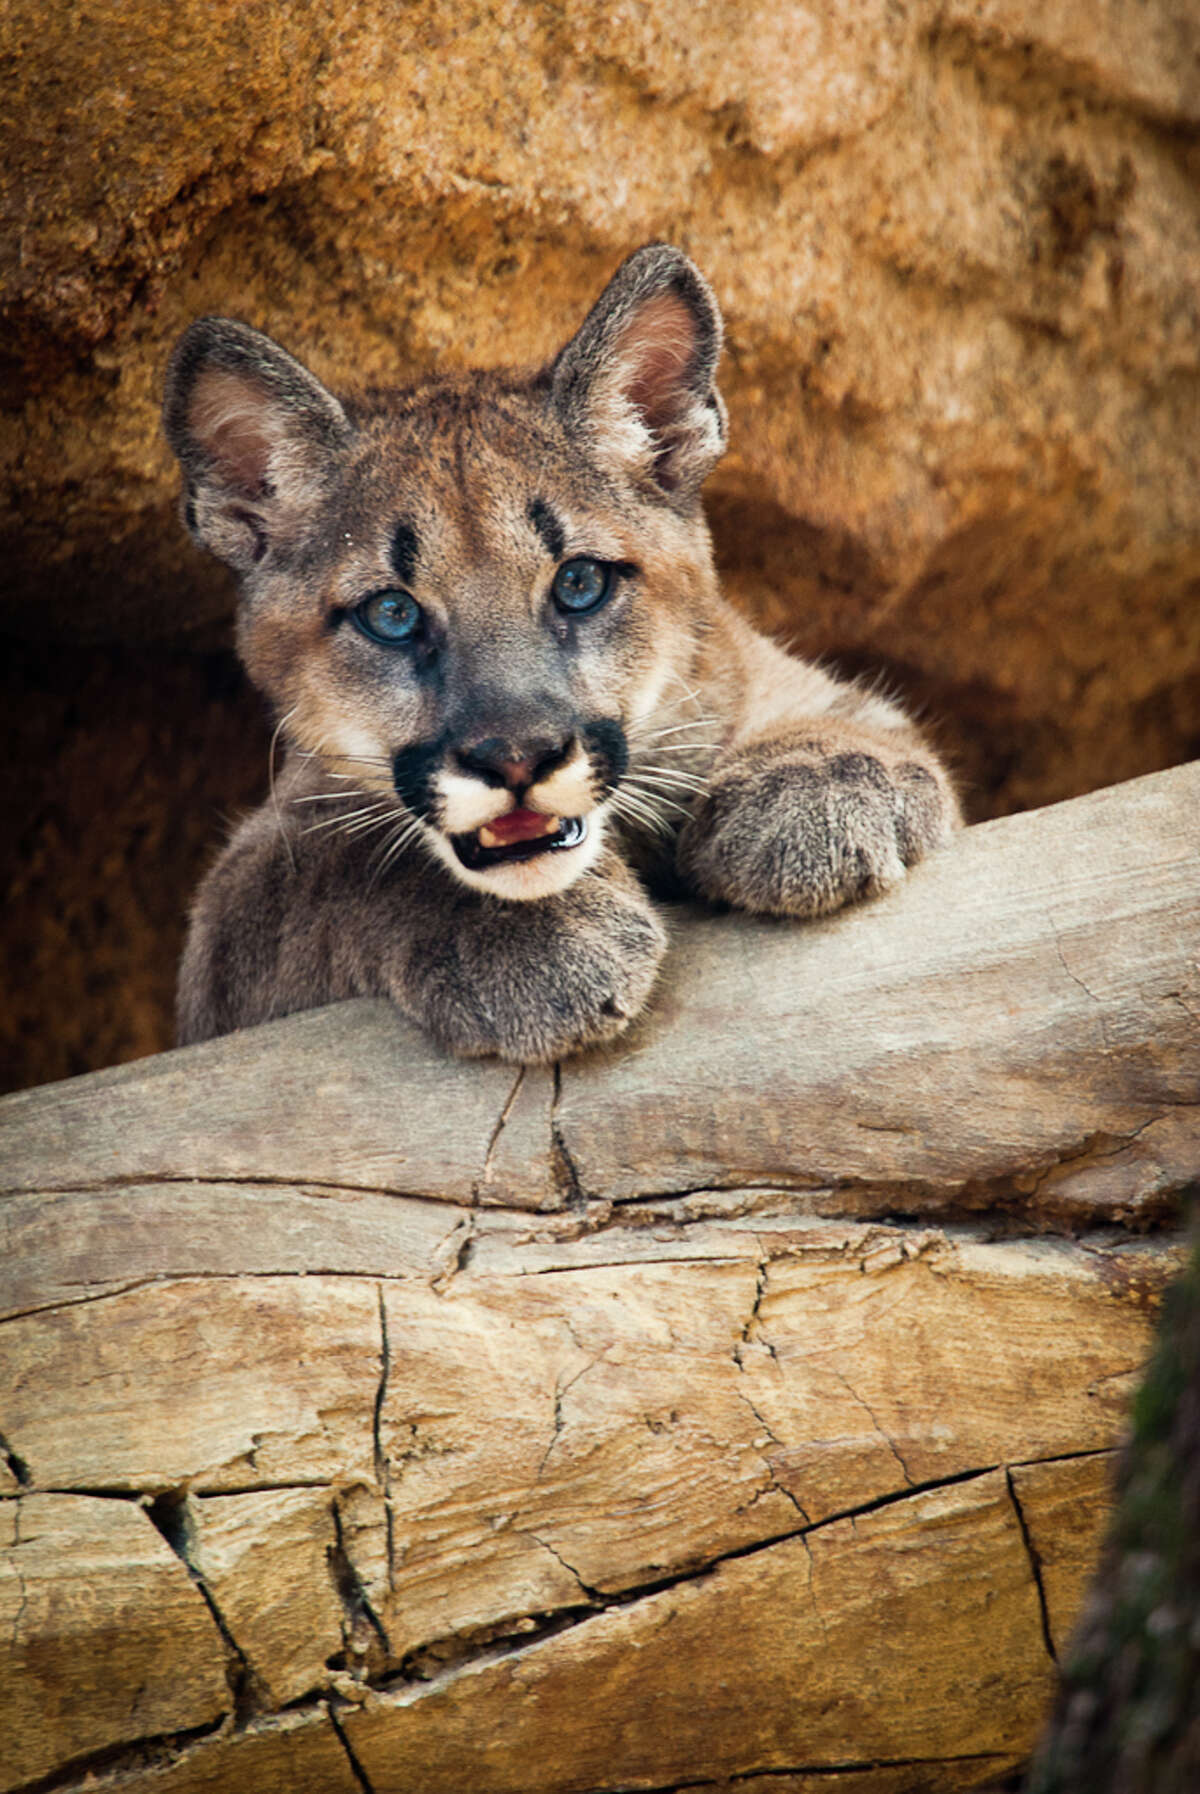 In this file photo, Shasta, a young male cougar cub selected as the UH mascot, is shown.